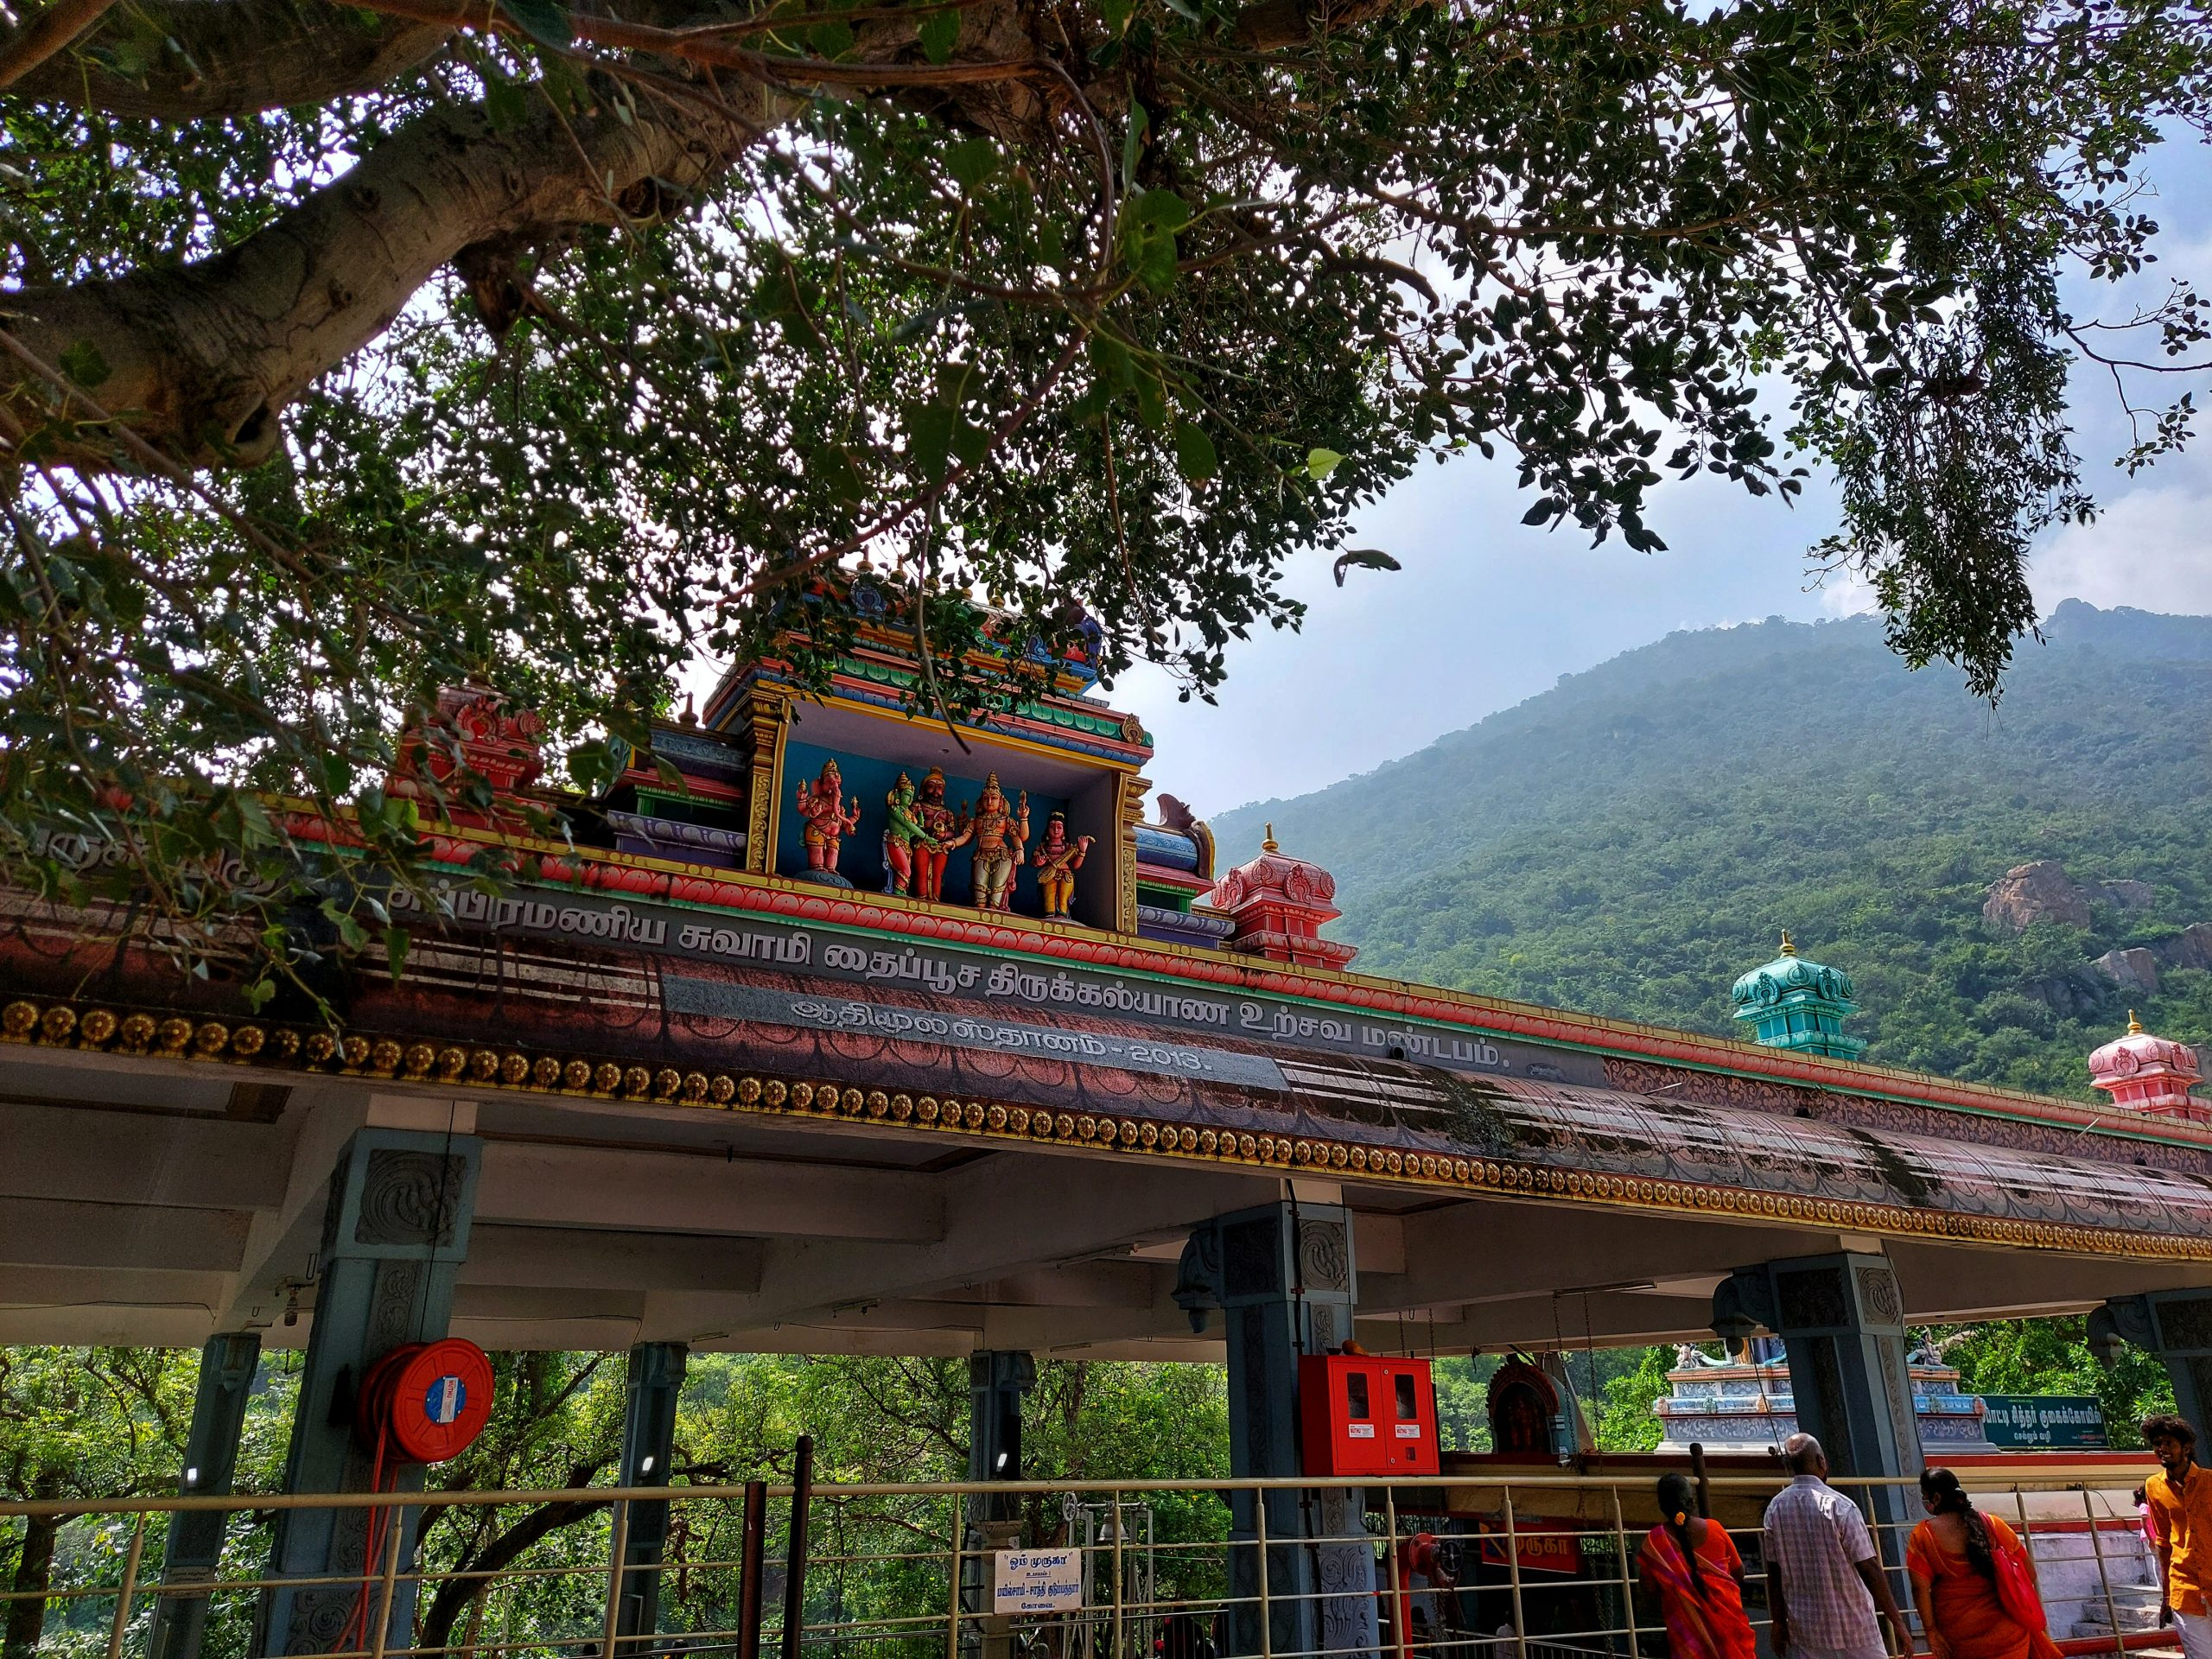 Landscape of Murugan temple